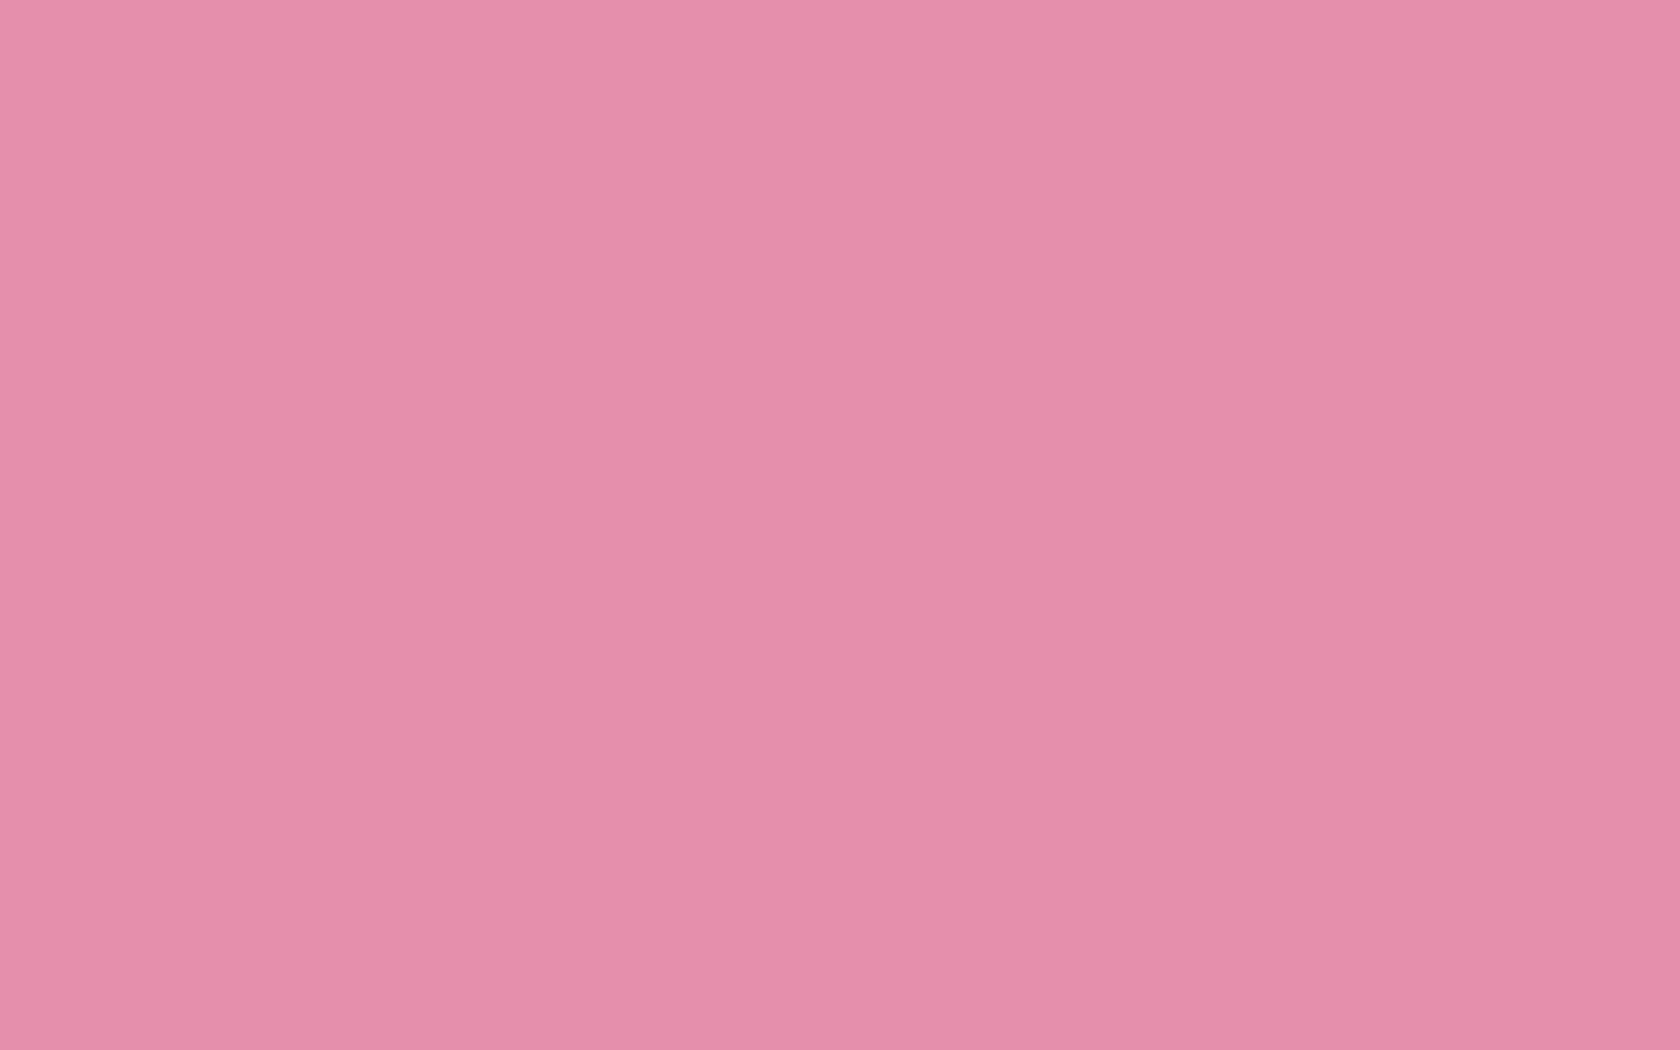 1680x1050 Charm Pink Solid Color Background